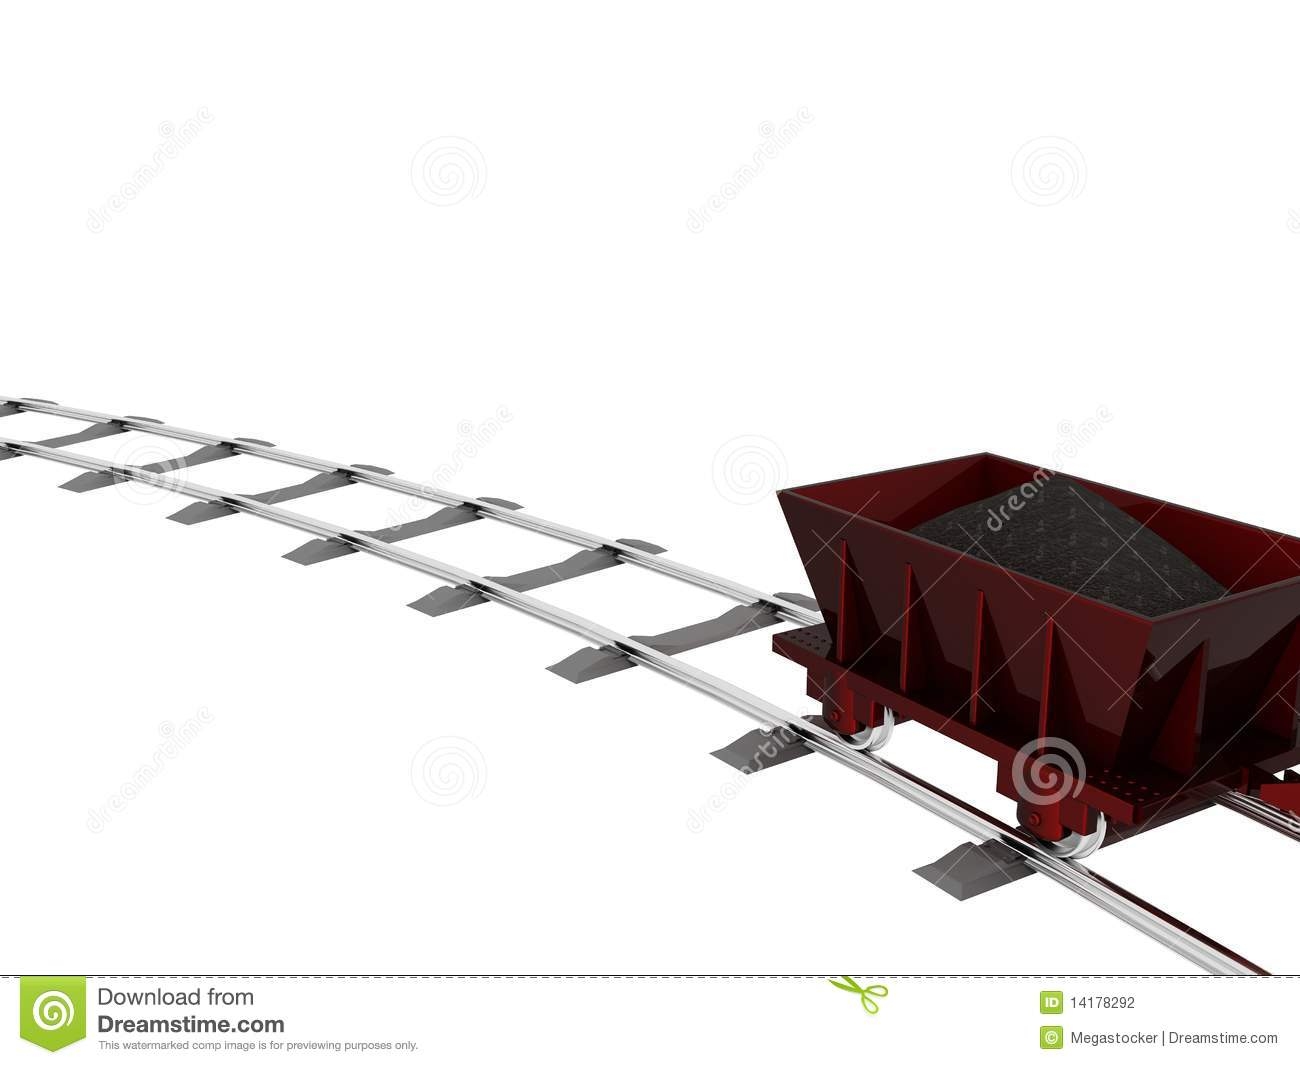 How to Start a Coal Transportation Business